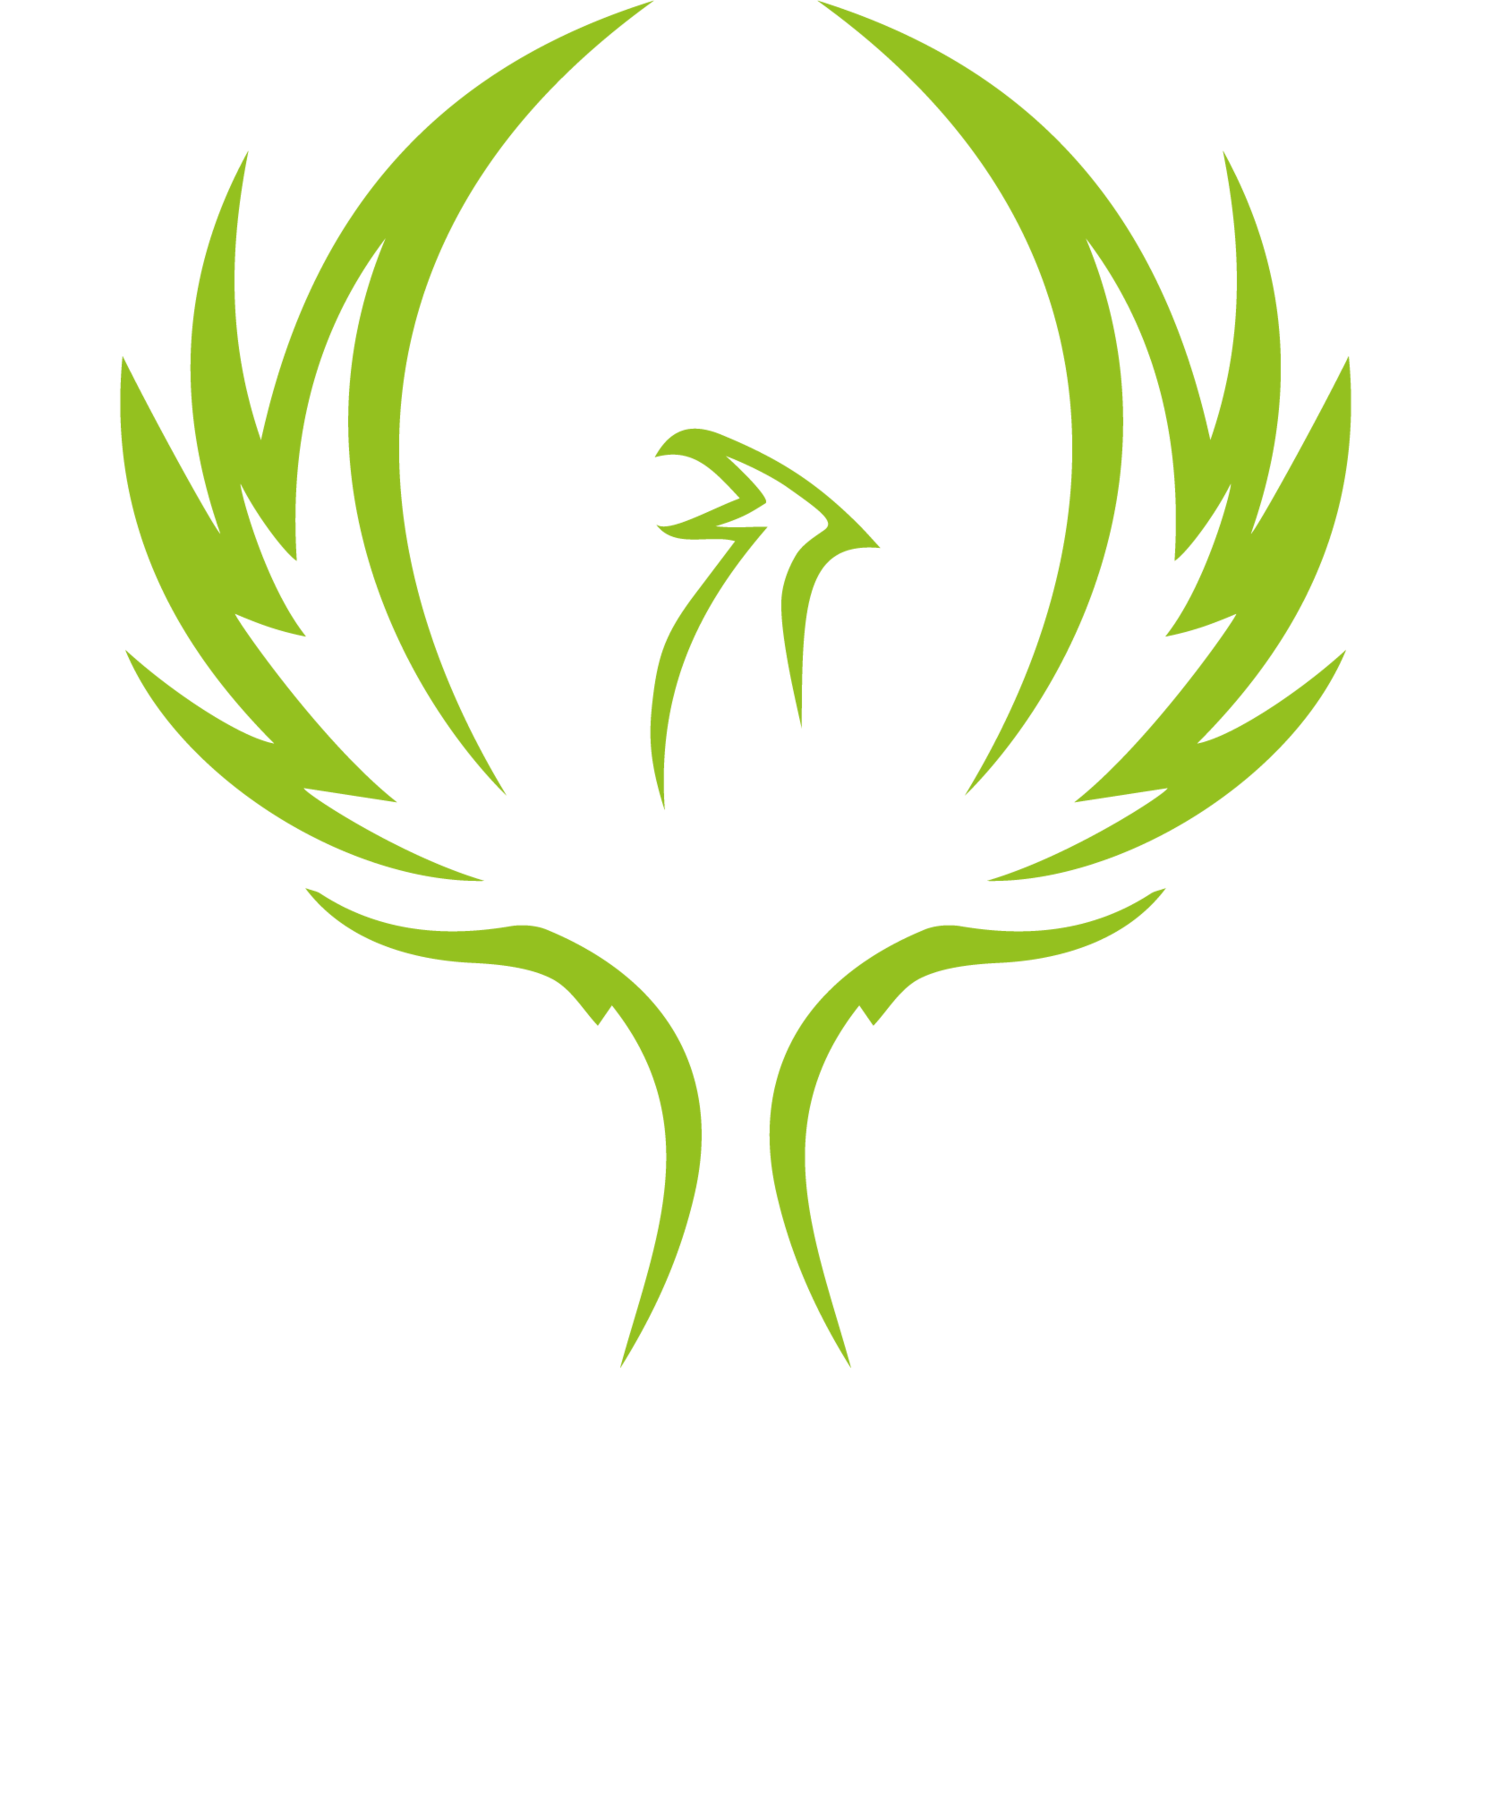 Limitless Golf Performance